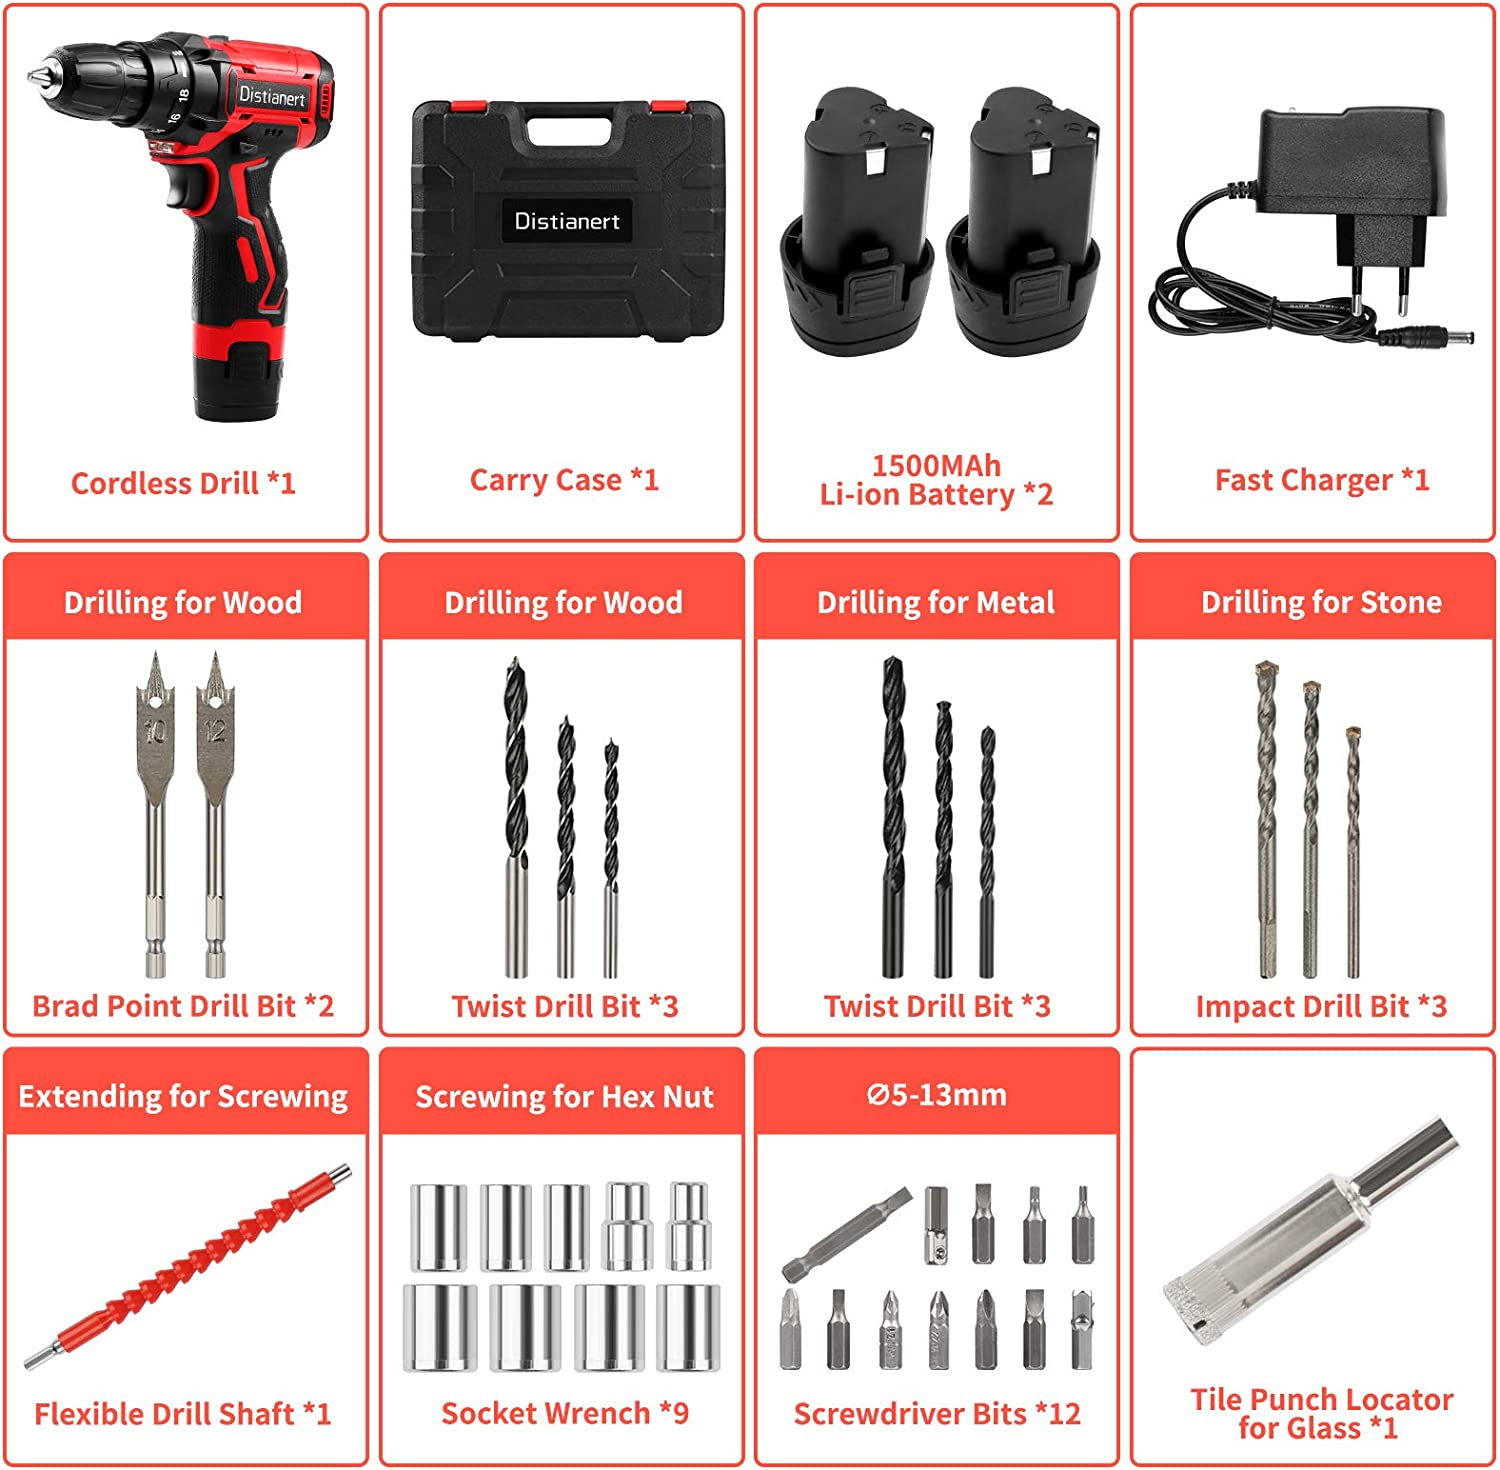 Wood Wall 34Pcs Combi Drill Set with 2 Batteries 18+1 Torque Setting Electric Screwdriver with 2-Speed LED Light for DIY 3//8 Chuck Distianert Cordless Drill Driver 12V Concrete 30Nm Max